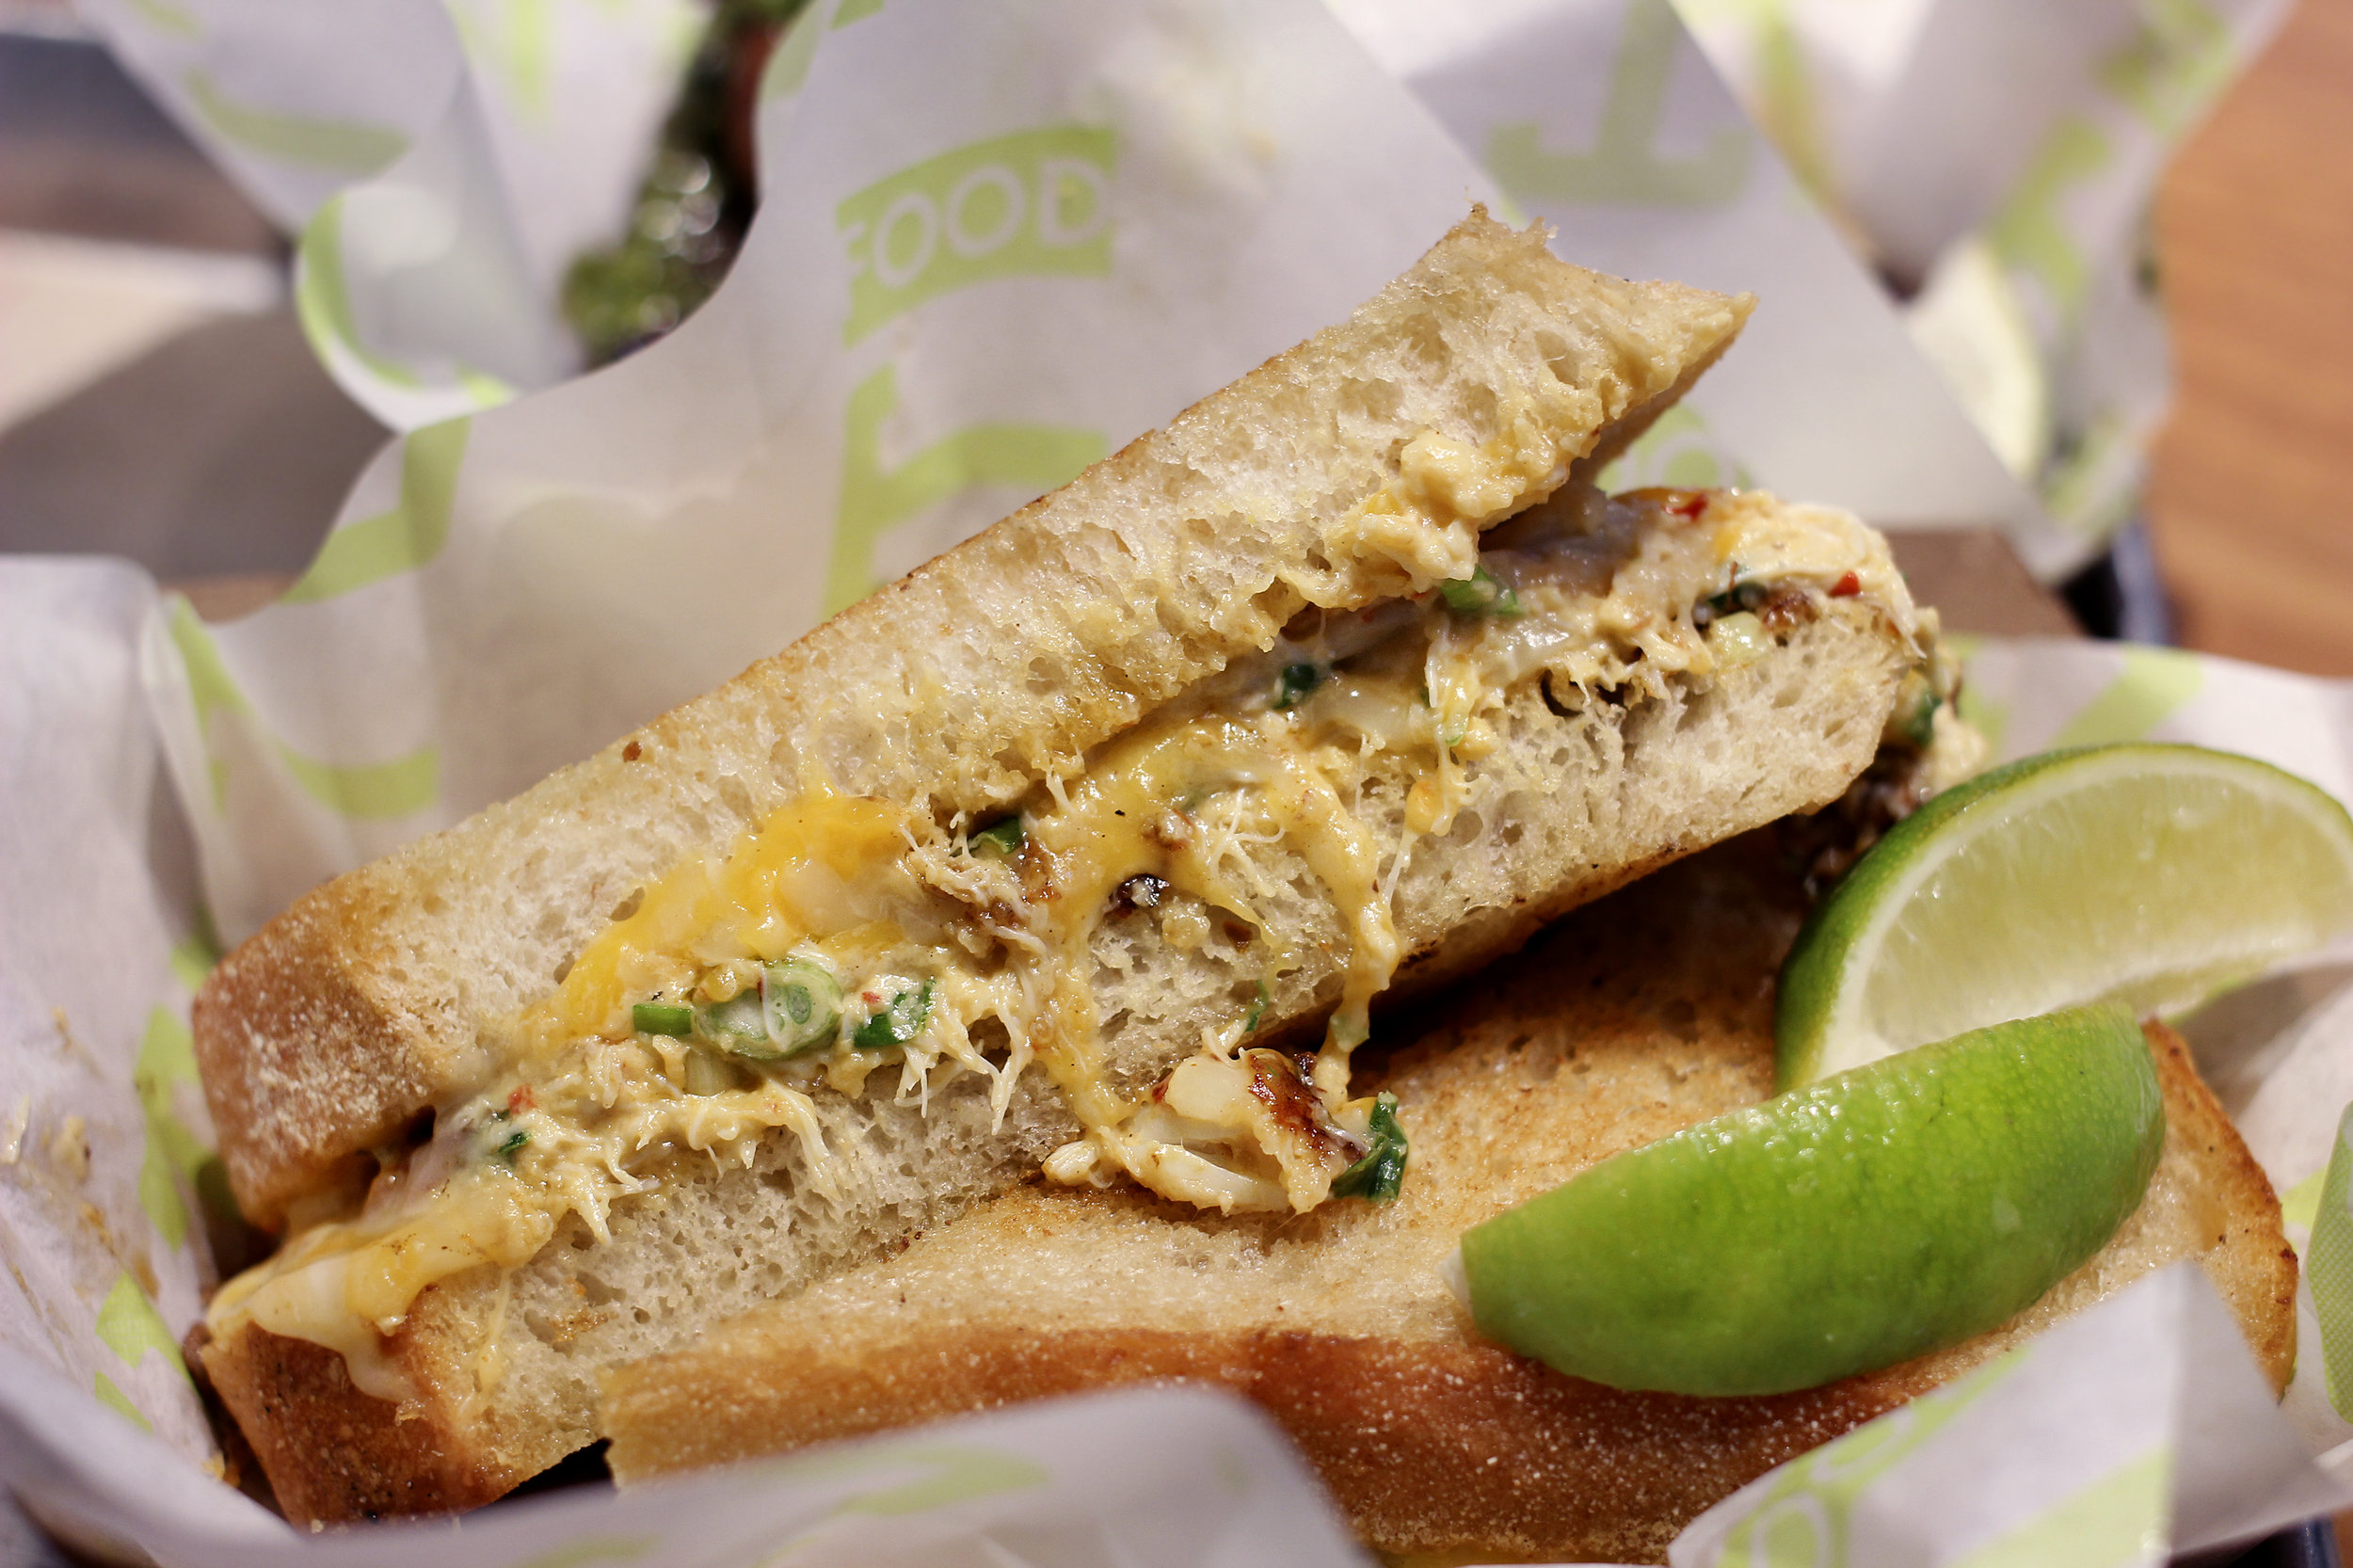 Blue Crab Grilled Cheese - Blue Crab, Cheese Blend, Scallions, Jalapeños, Sambal, Grilled Sourdough. No Substitutions (For $12, this was worth it.)